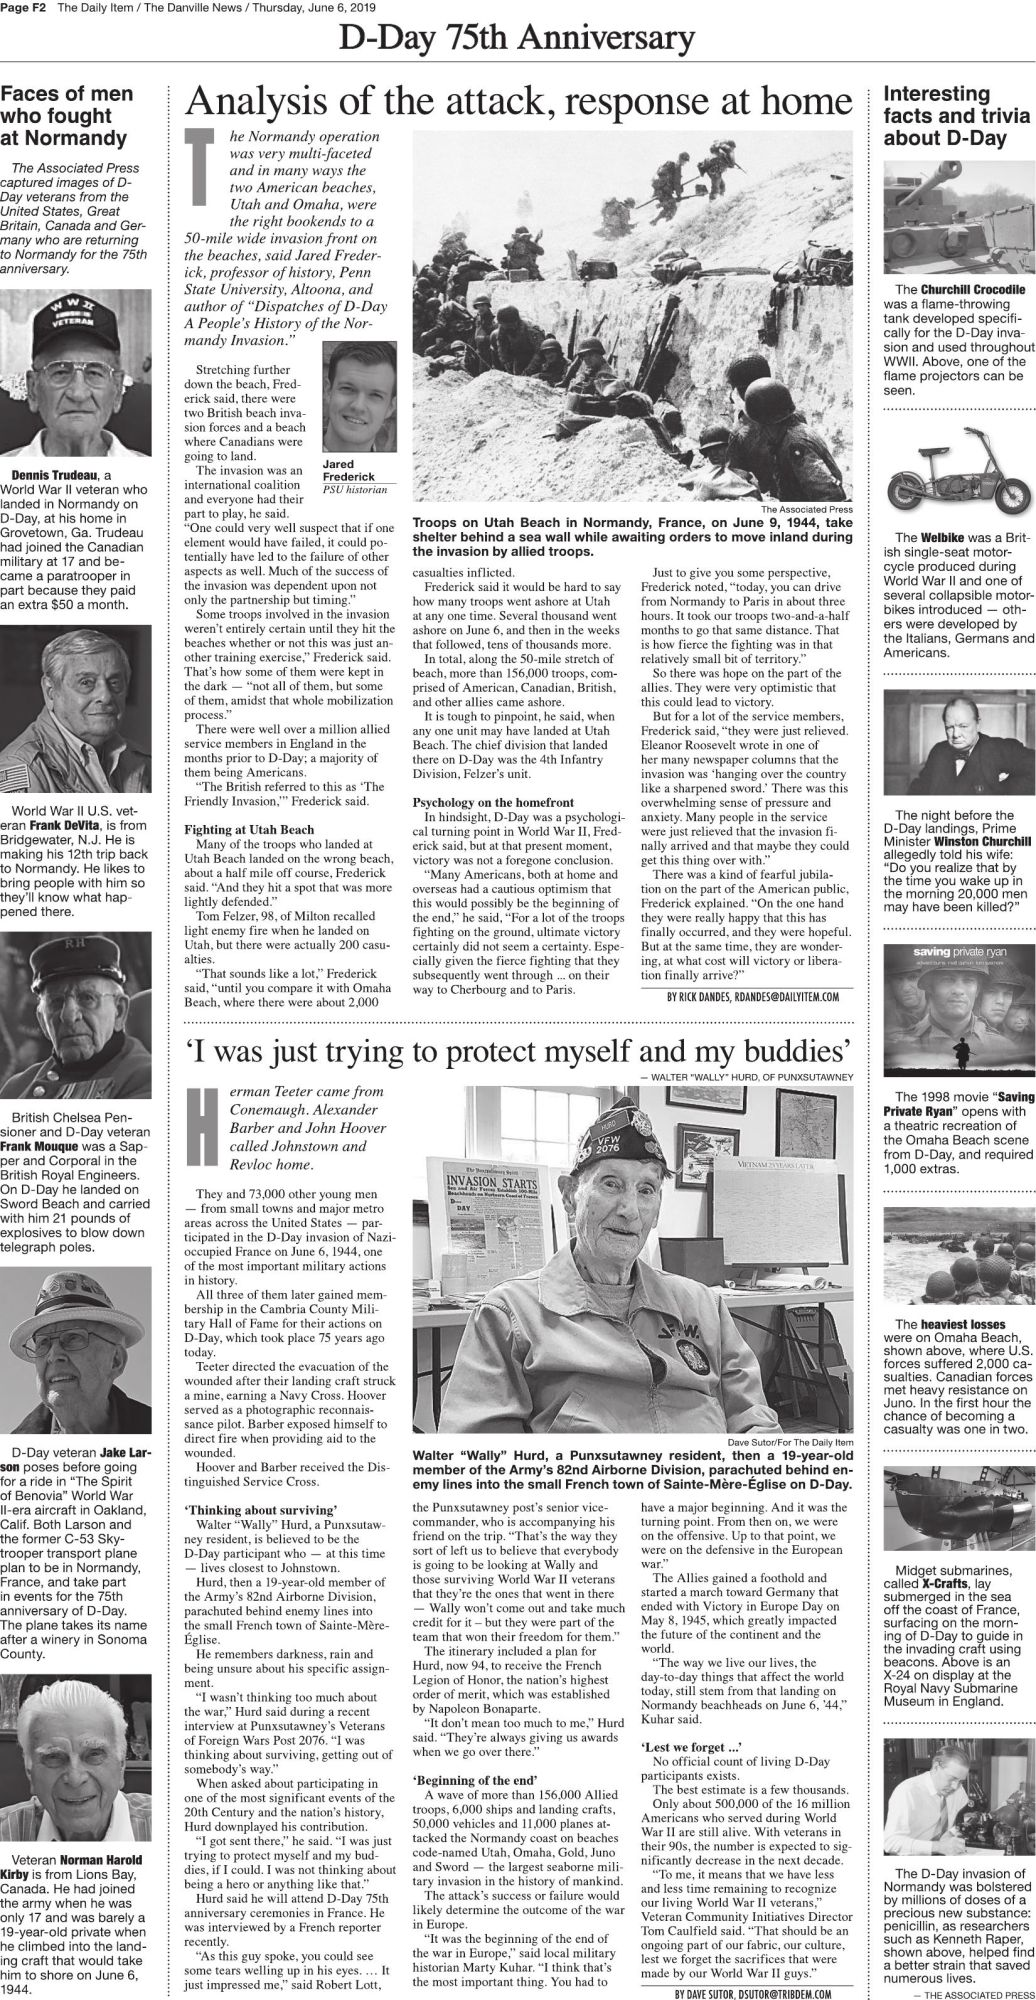 D-Day: 75th Anniversary Page 2 | Dday | dailyitem com